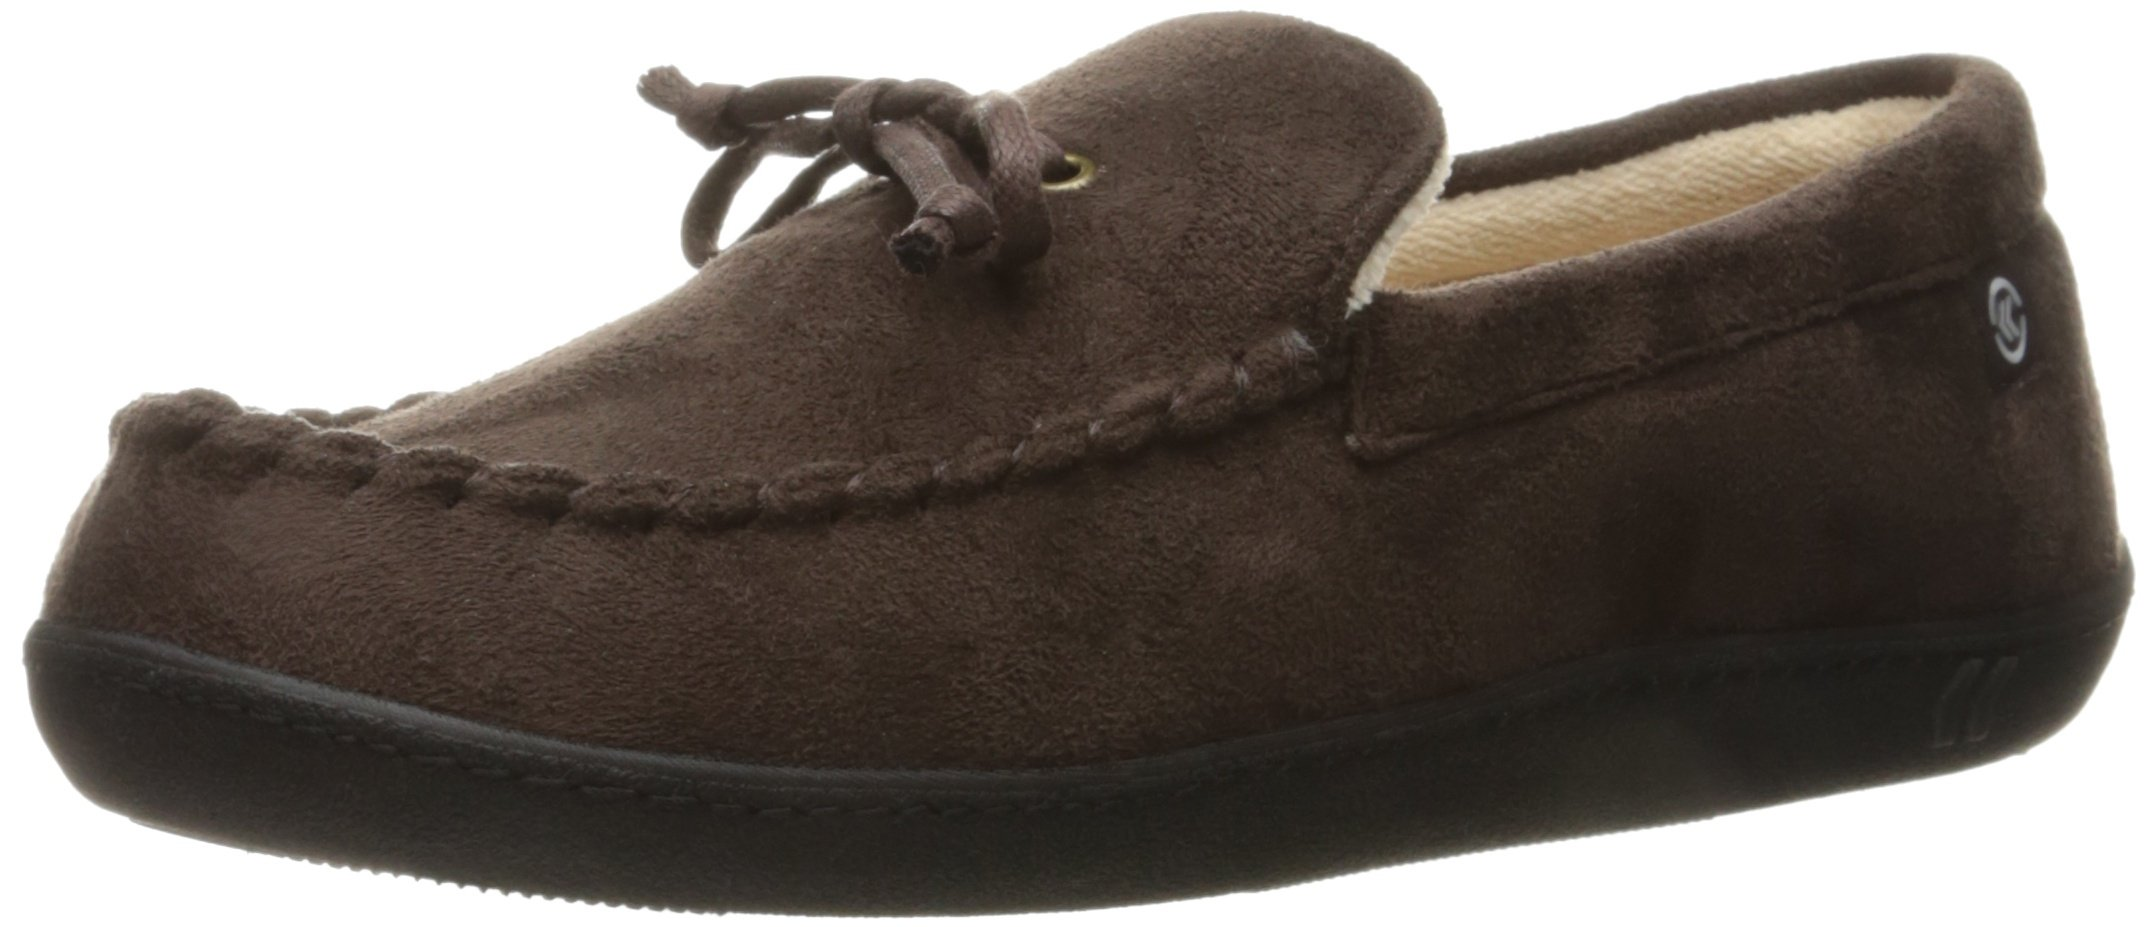 ISOTONER Men's Whipstitch Gel Infused Memory Foam Moccasin, Dark Chocolate, XX-Large/13-14 M US by ISOTONER